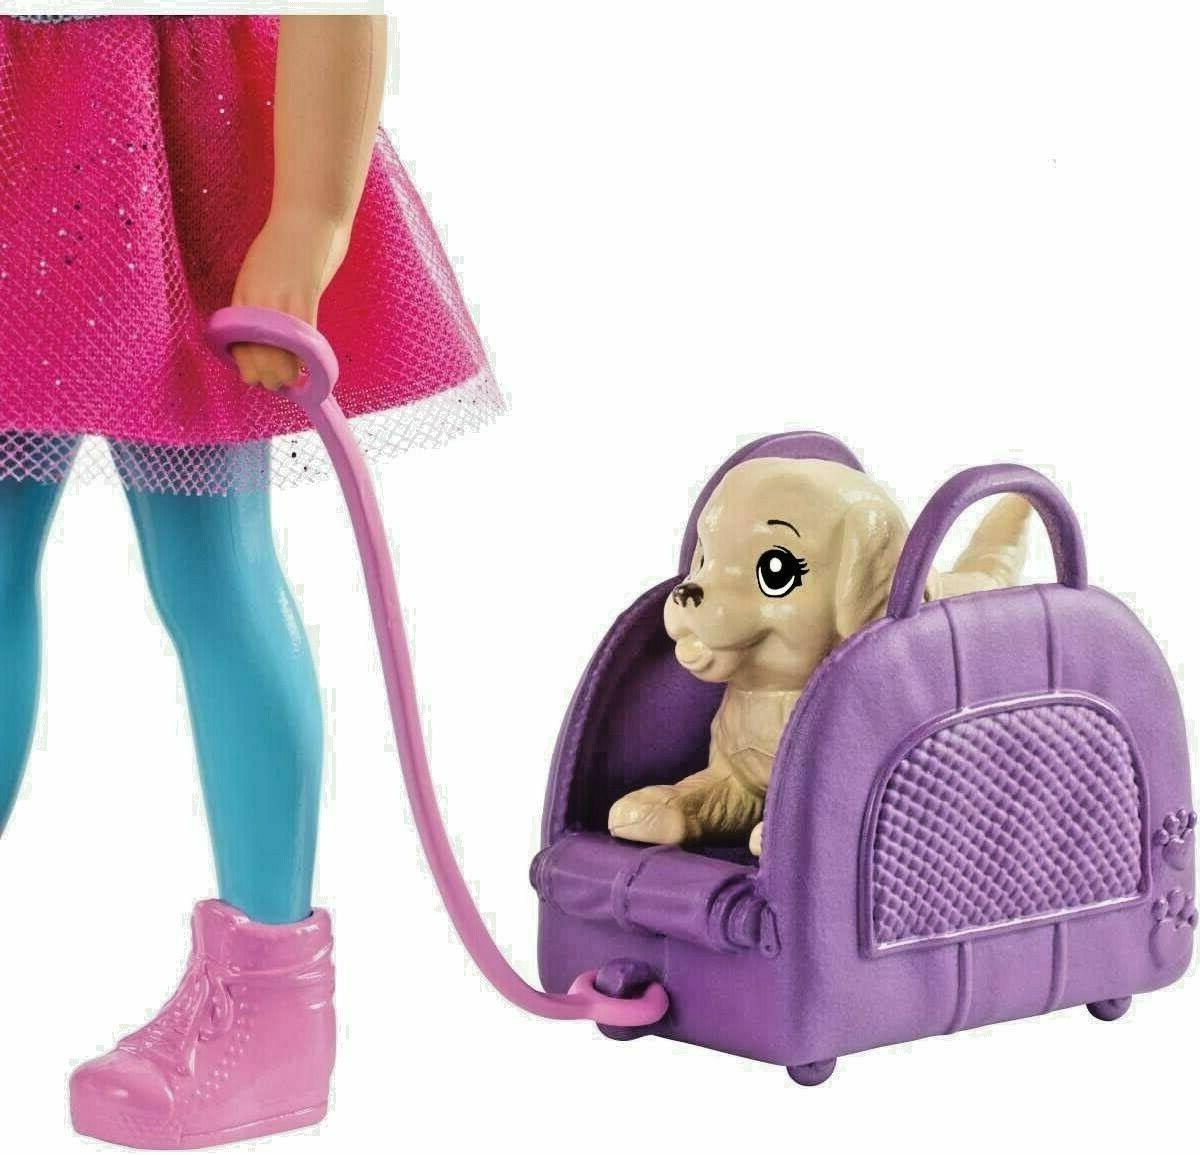 New Travel Doll with Puppy, Carrier Accessories!